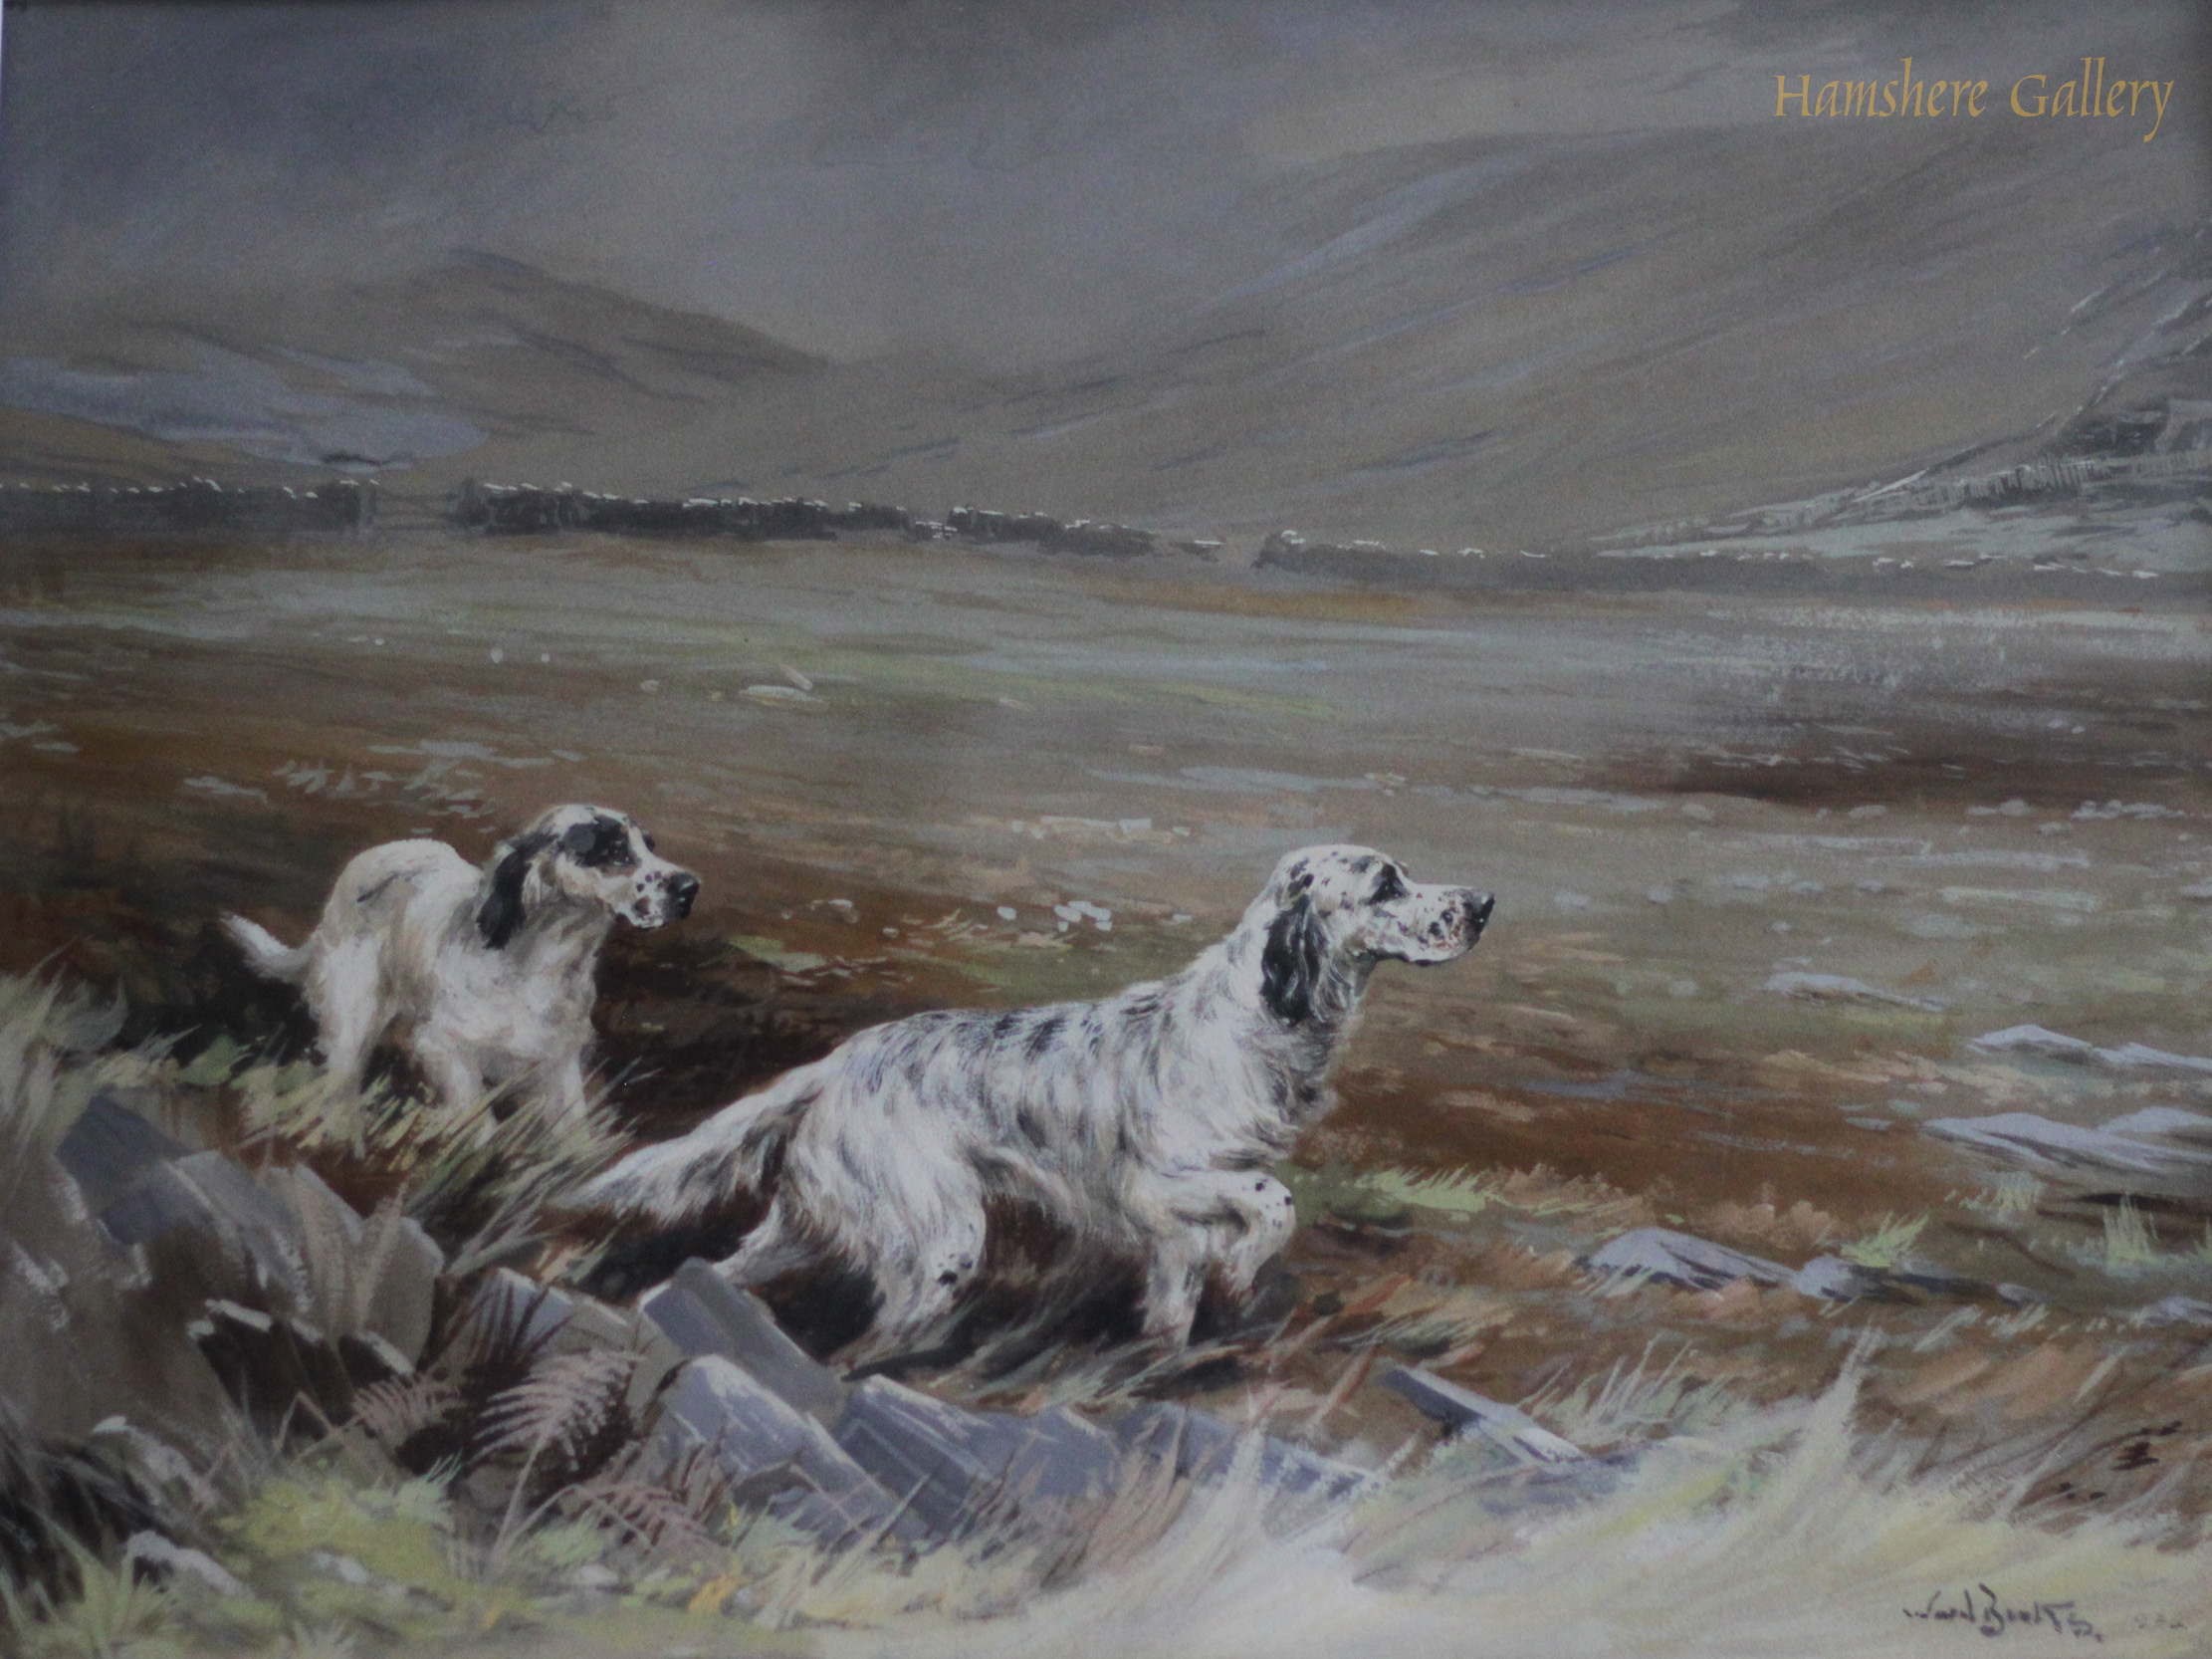 Click to see full size: Watercolour of two English Setter dogs at work by Reuben Ward Binks - Watercolour of two English Setter dogs at work by Reuben Ward Binks